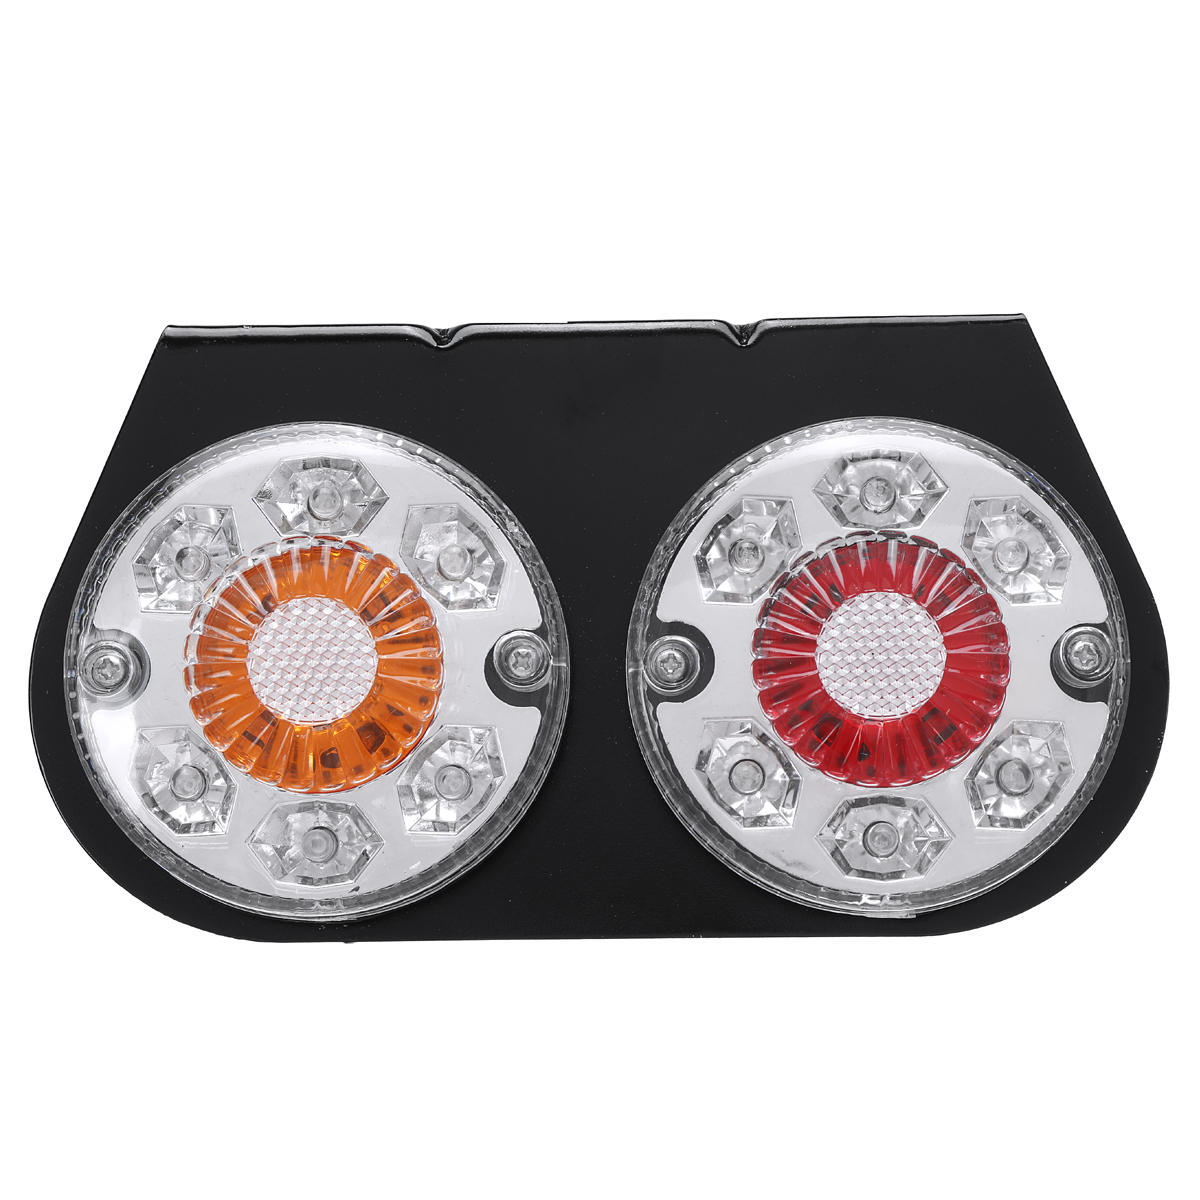 12V 20 LED Indicator Stop Rear Tail Lights For Boat Car Truck Trailer Iron Bracket